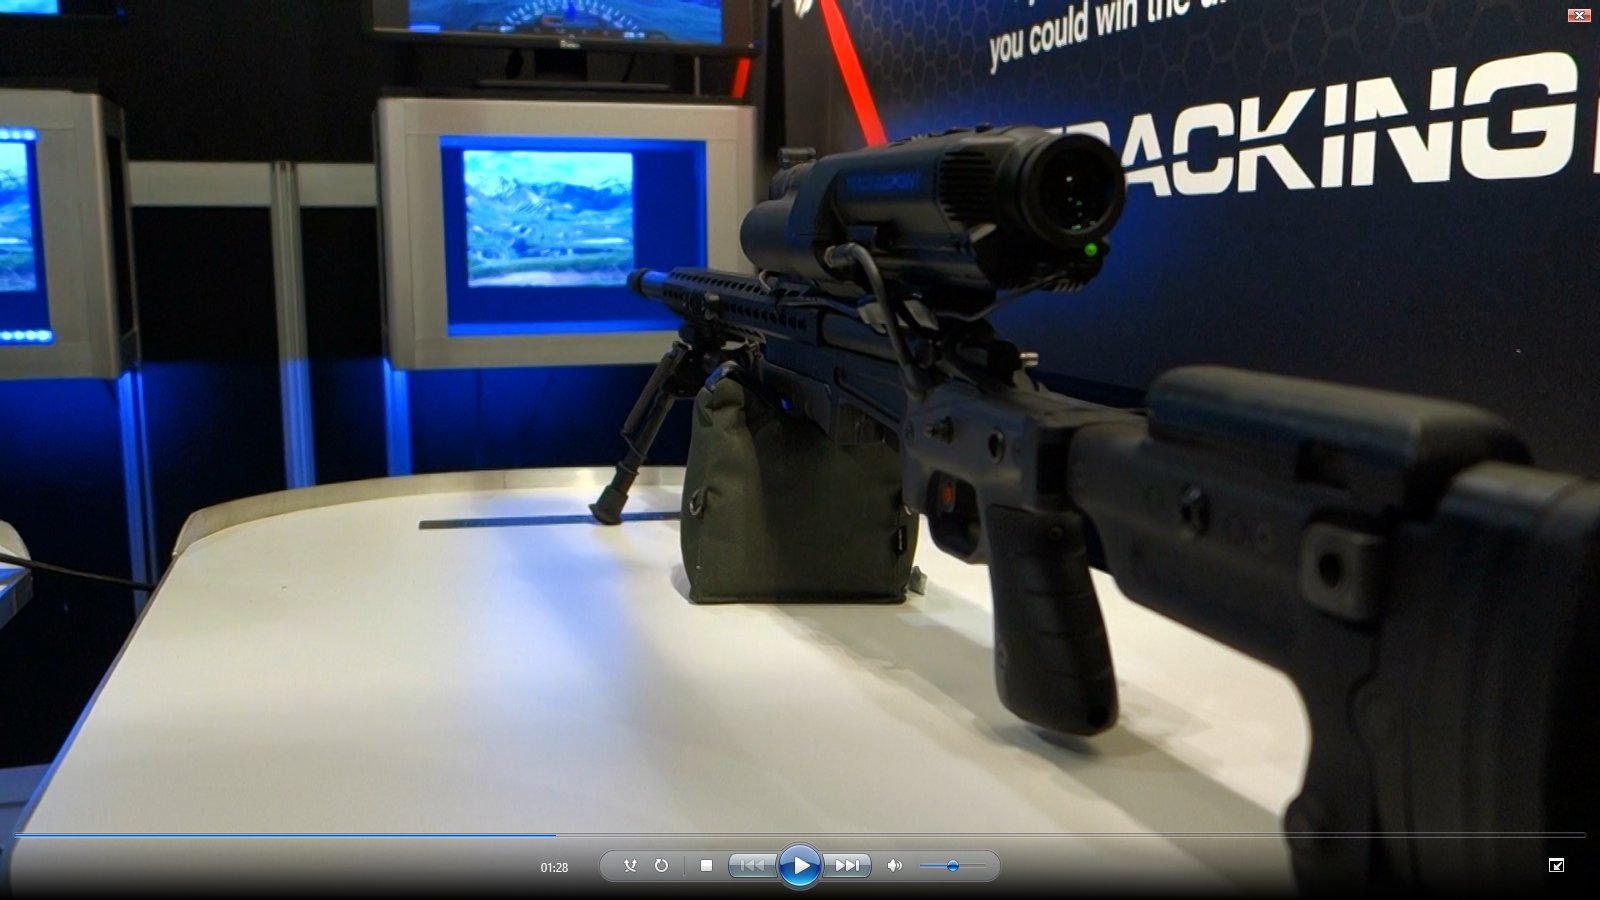 TrackingPoint XactSystem Precision Guided Firearm PGF Integrated Networked Tracking Scope Exhibit Floor SHOT Show 2013 David Crane DefenseReview.com DR 3 TrackingPoint XactSystem Precision Guided Firearm (PGF) Sniper Rifle Package with Surgeon Rifle and Integrated Networked Tracking Scope/Smart Scope Explained in Detail (Video!)